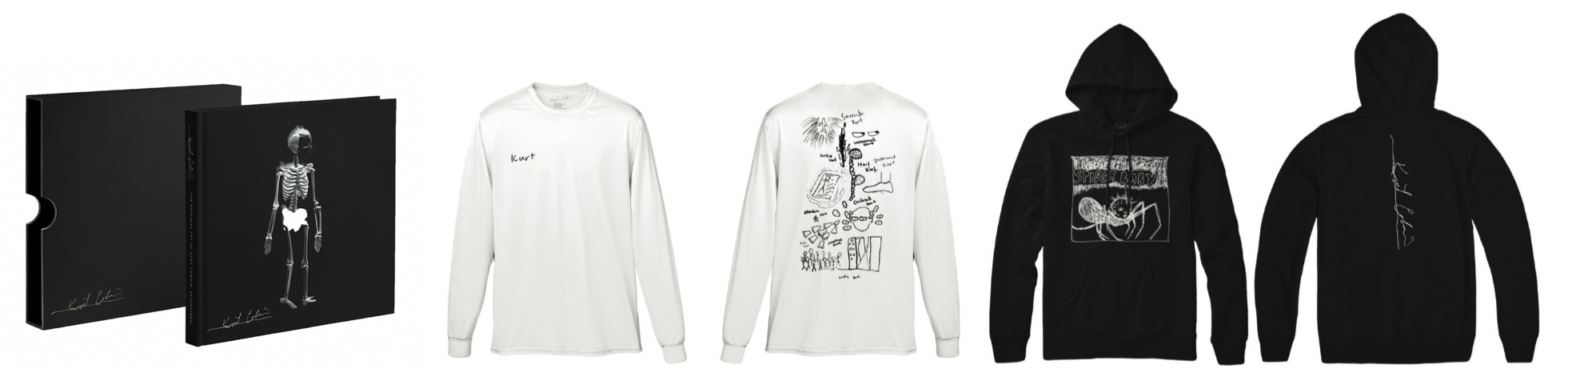 Tees and sweatshirts from the Kurt Cobain collection